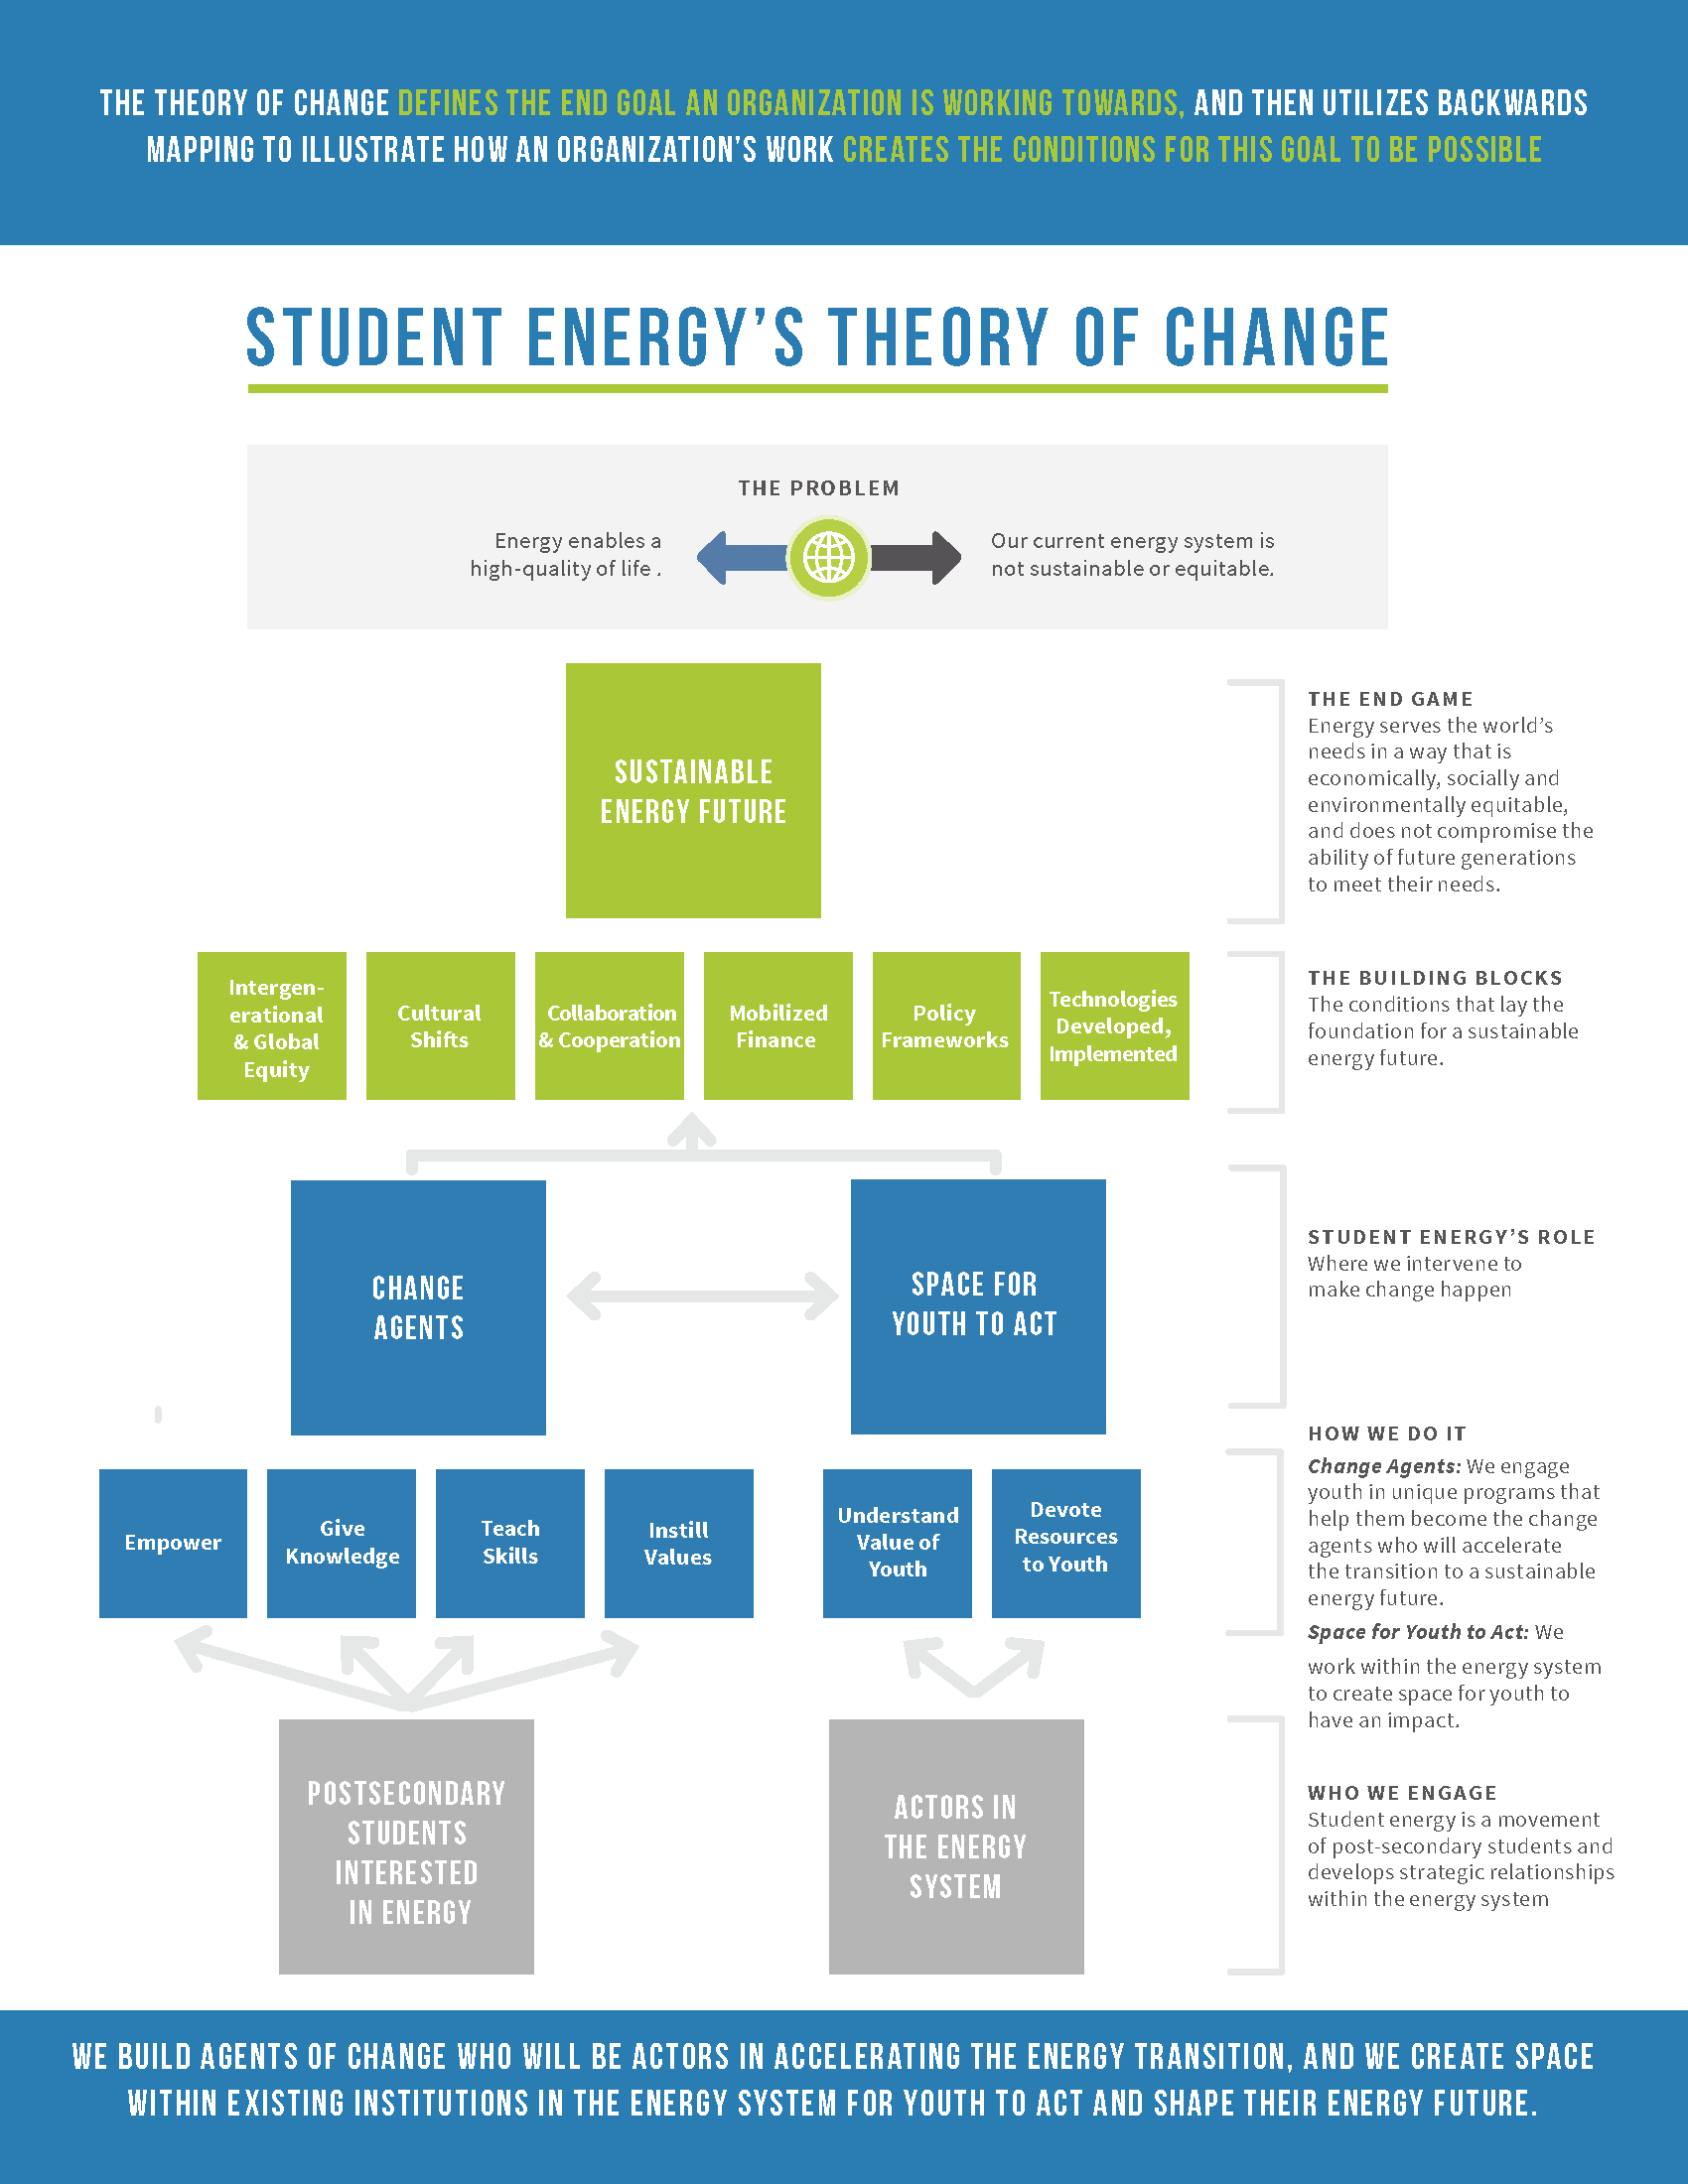 Theory of Change - Student Energy